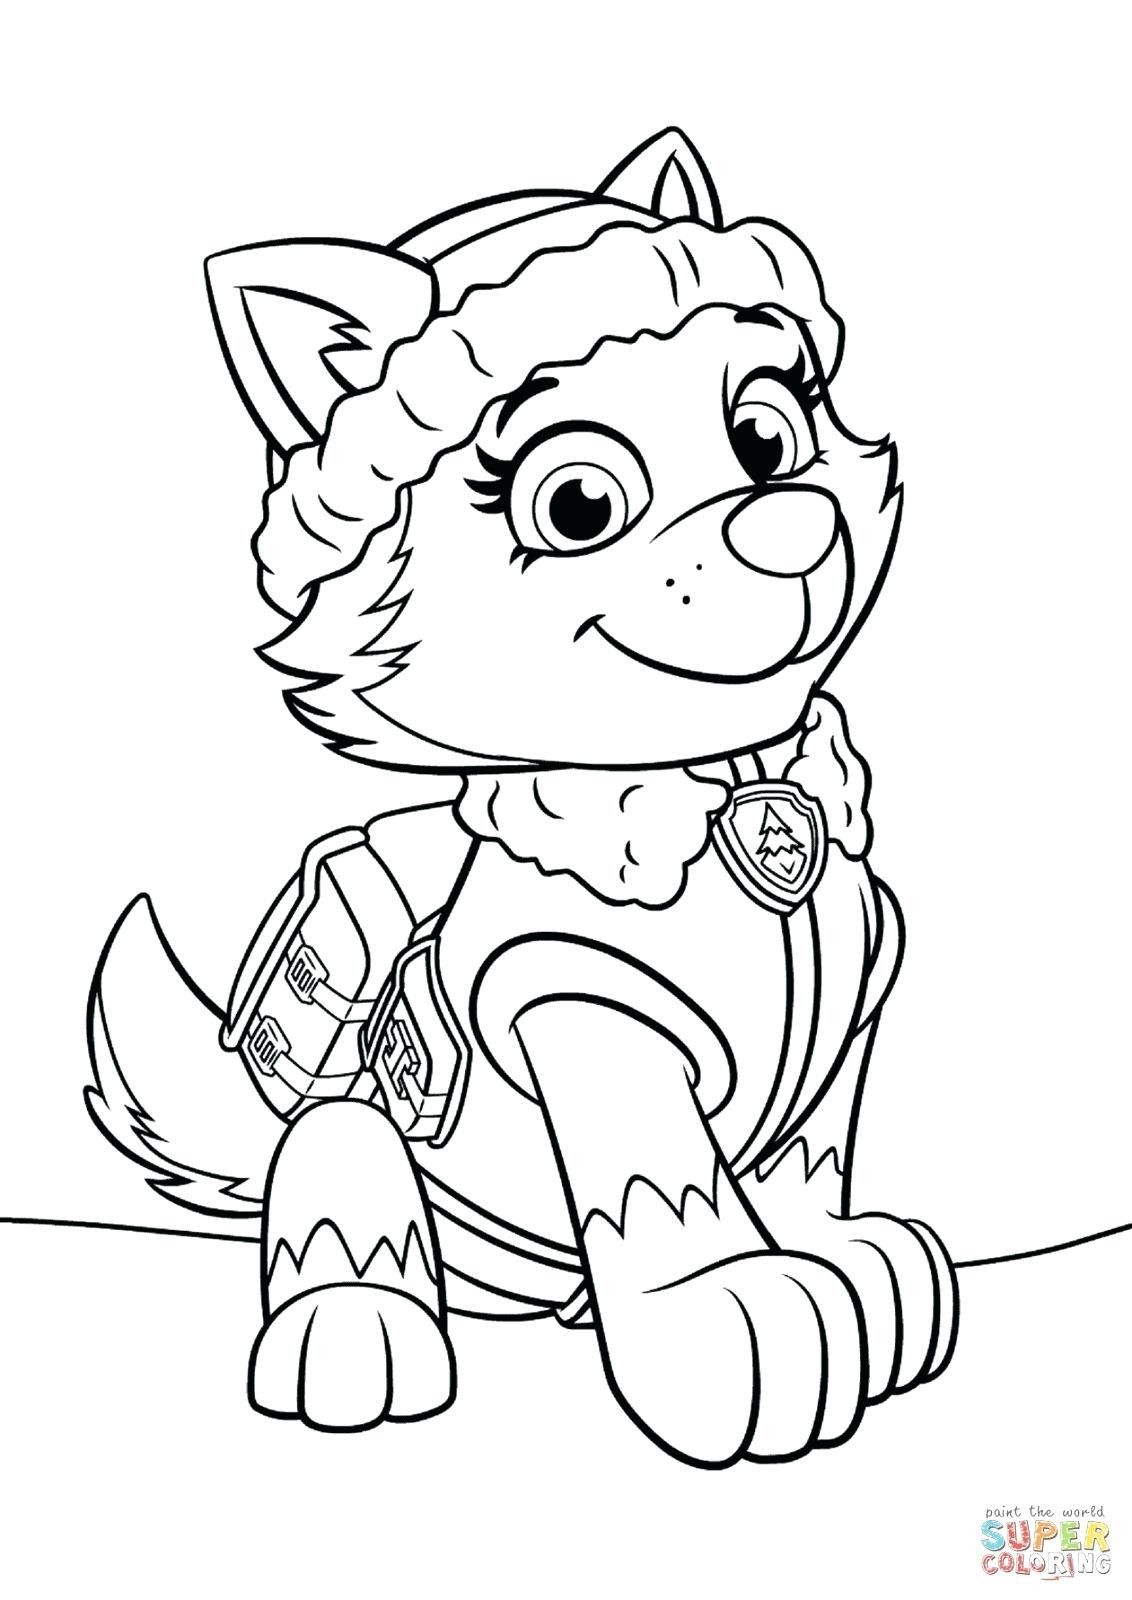 Paw Patrol Christmas Coloring Page Youngandtae Com In 2020 Paw Patrol Coloring Turtle Coloring Pages Paw Patrol Coloring Pages